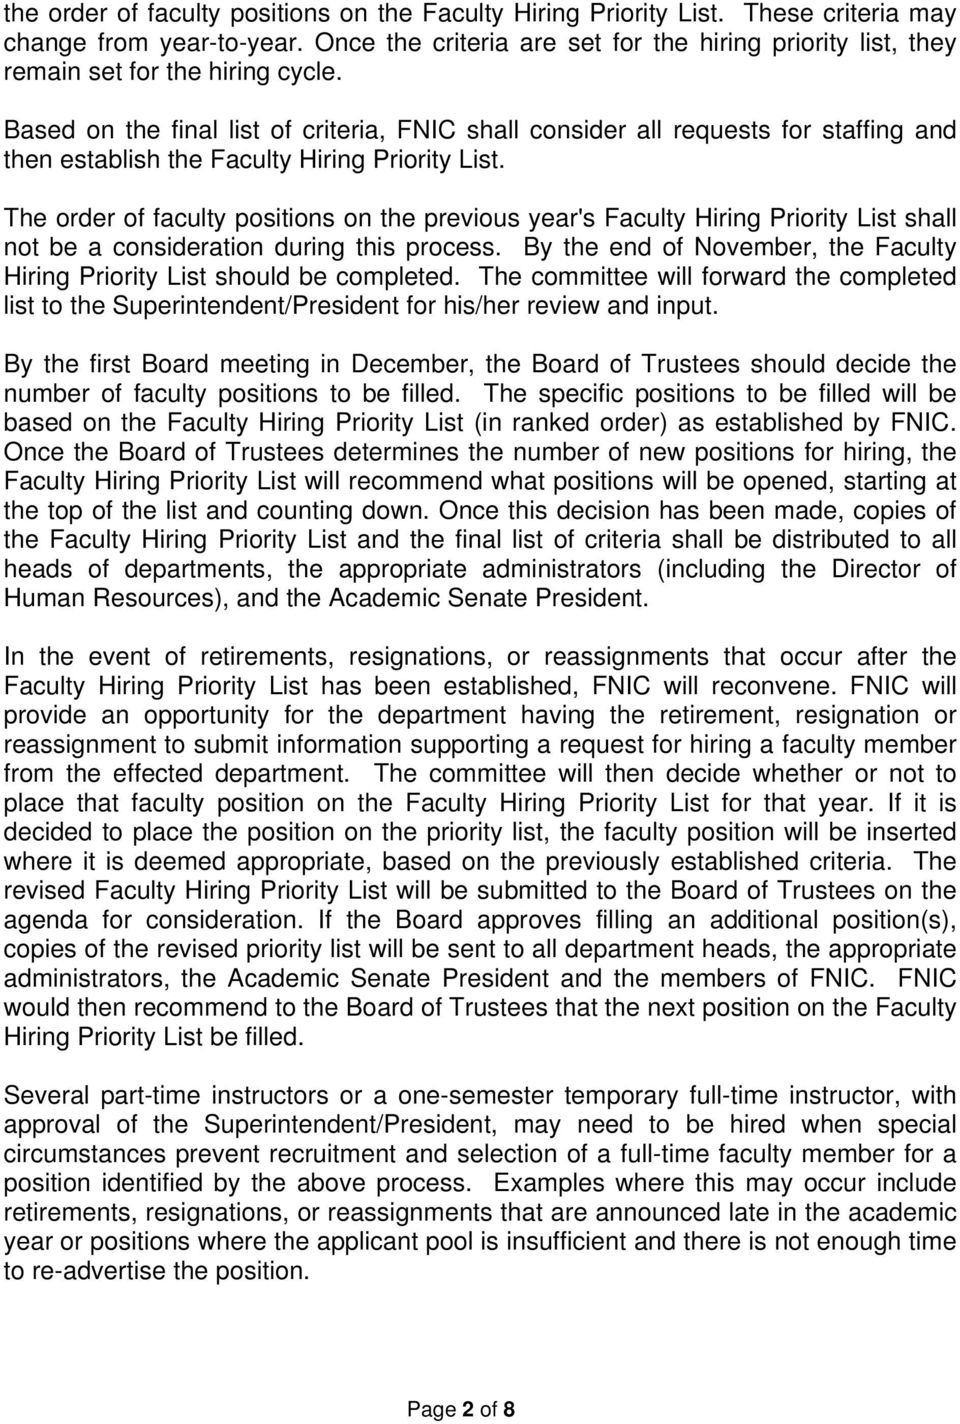 Based on the final list of criteria, FNIC shall consider all requests for staffing and then establish the Faculty Hiring Priority List.